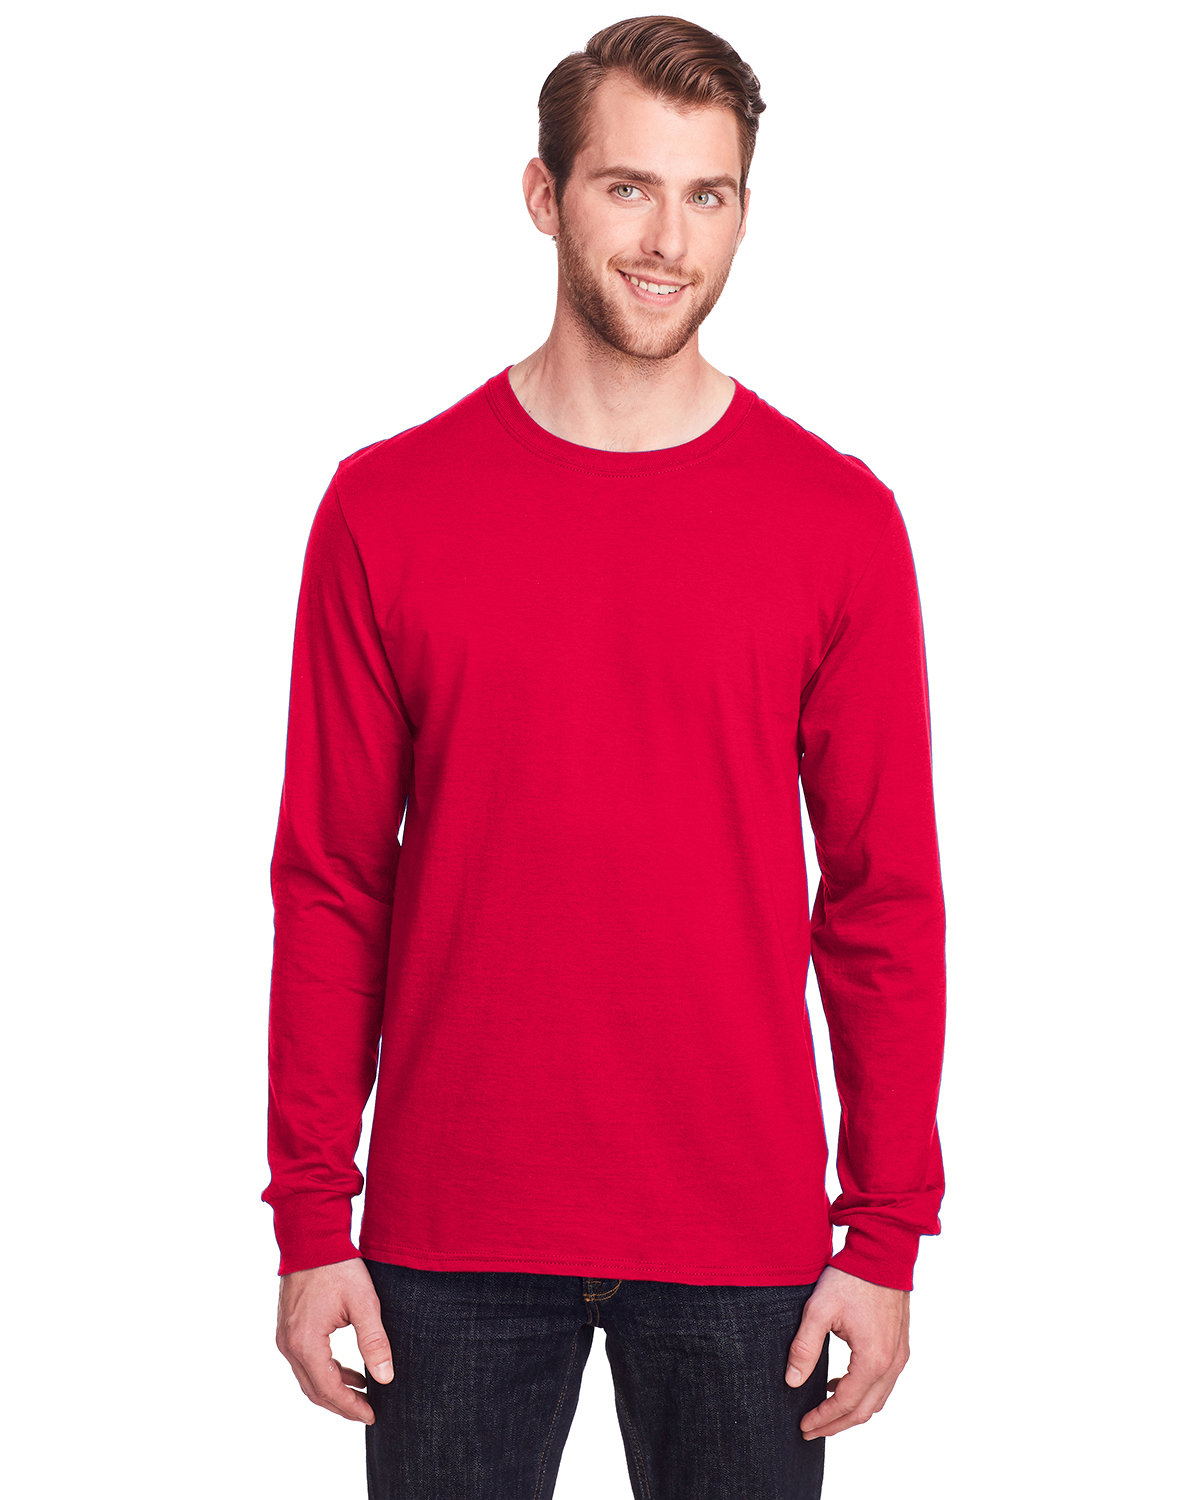 Fruit of the Loom Adult ICONIC™ Long Sleeve T-Shirt TRUE RED